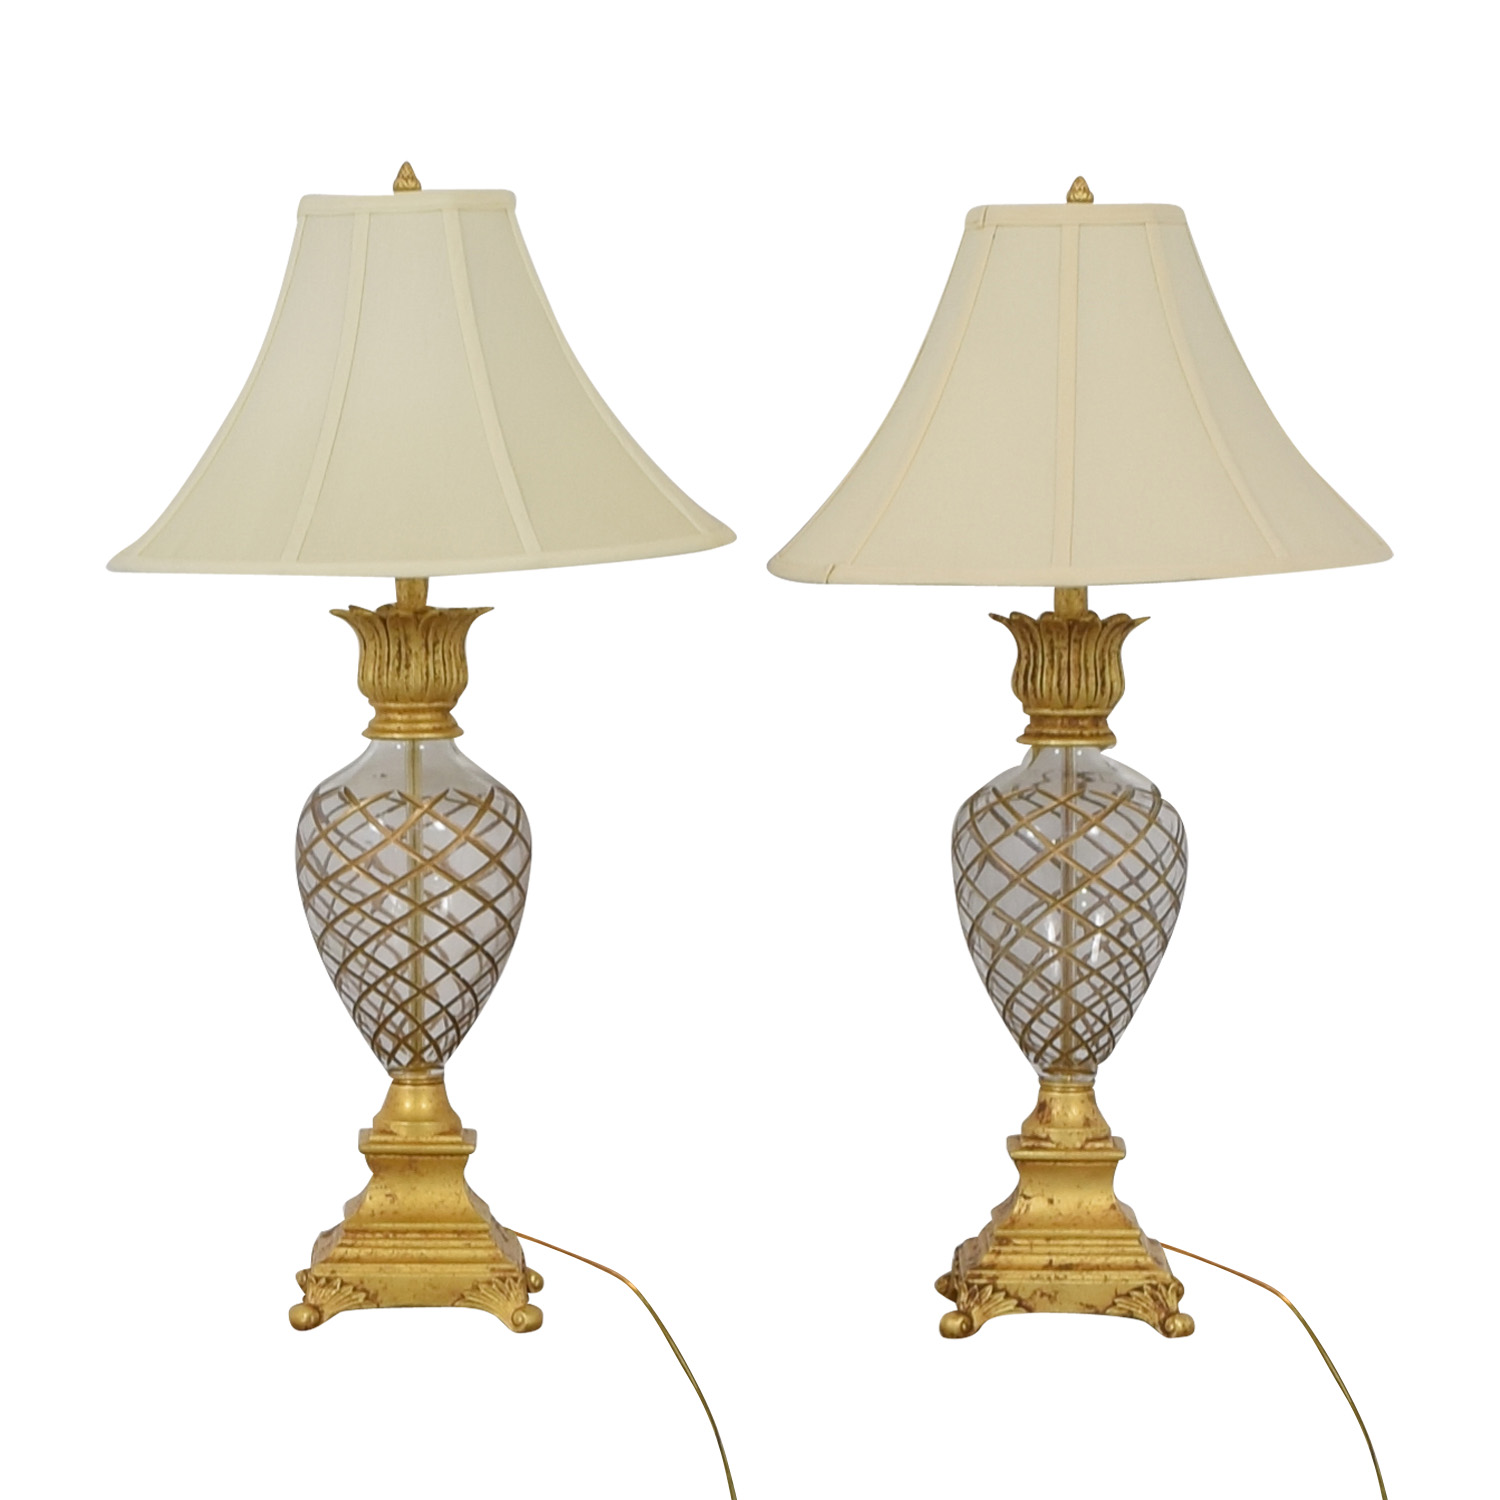 Ethan Allen Ethan Allen Table Lamps dimensions